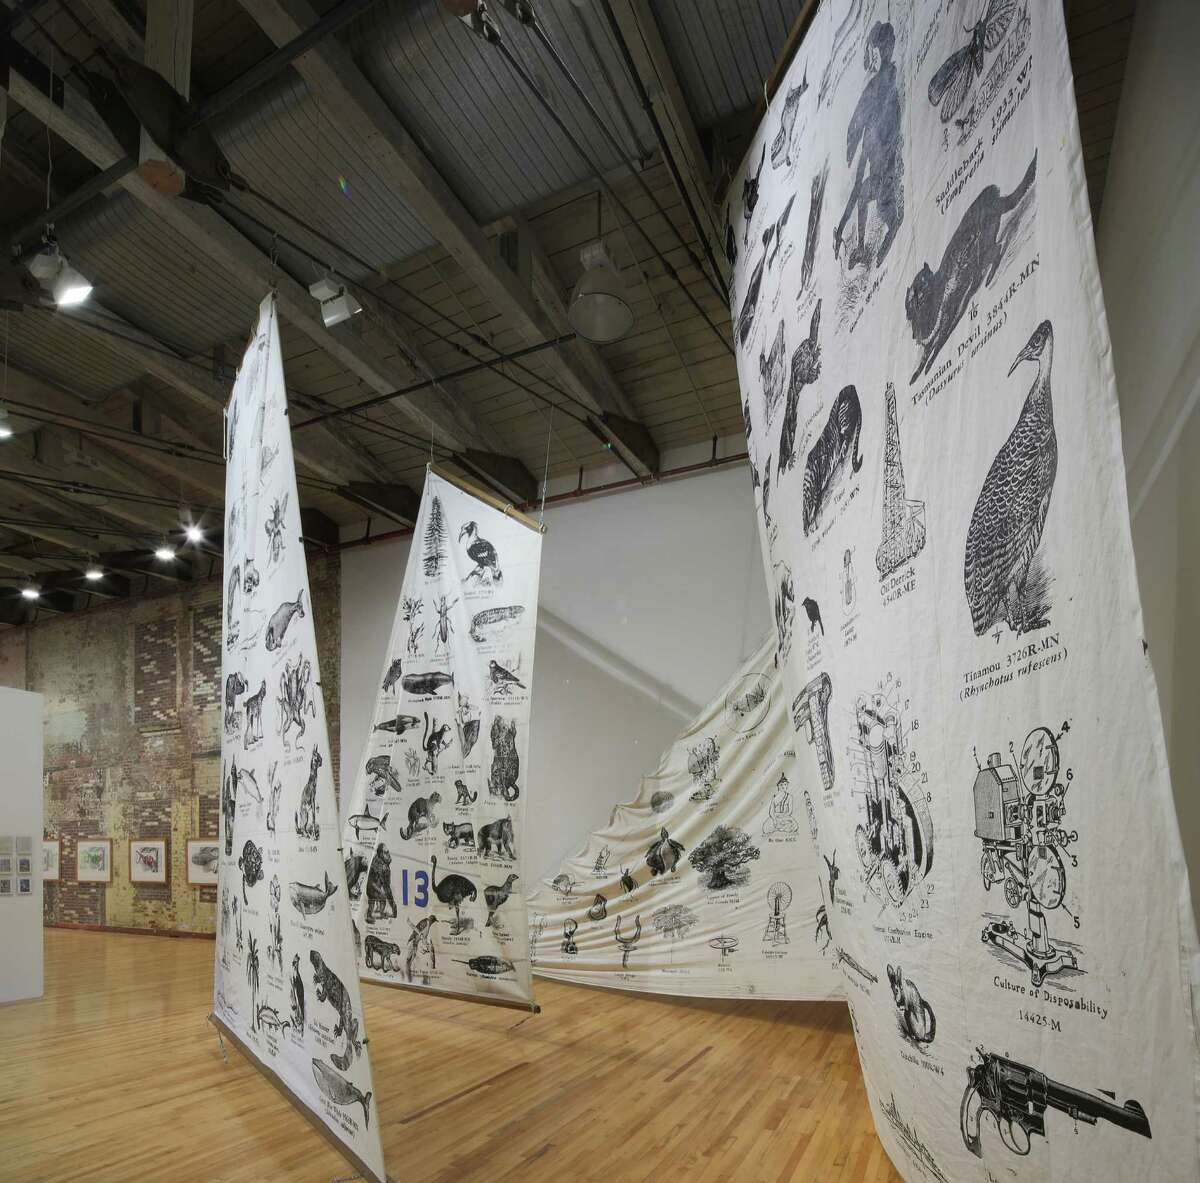 Photos Documenting Life's Work, including the work of Tom Phillips and Johnny Carrera, 2013 at Mass MoCA.